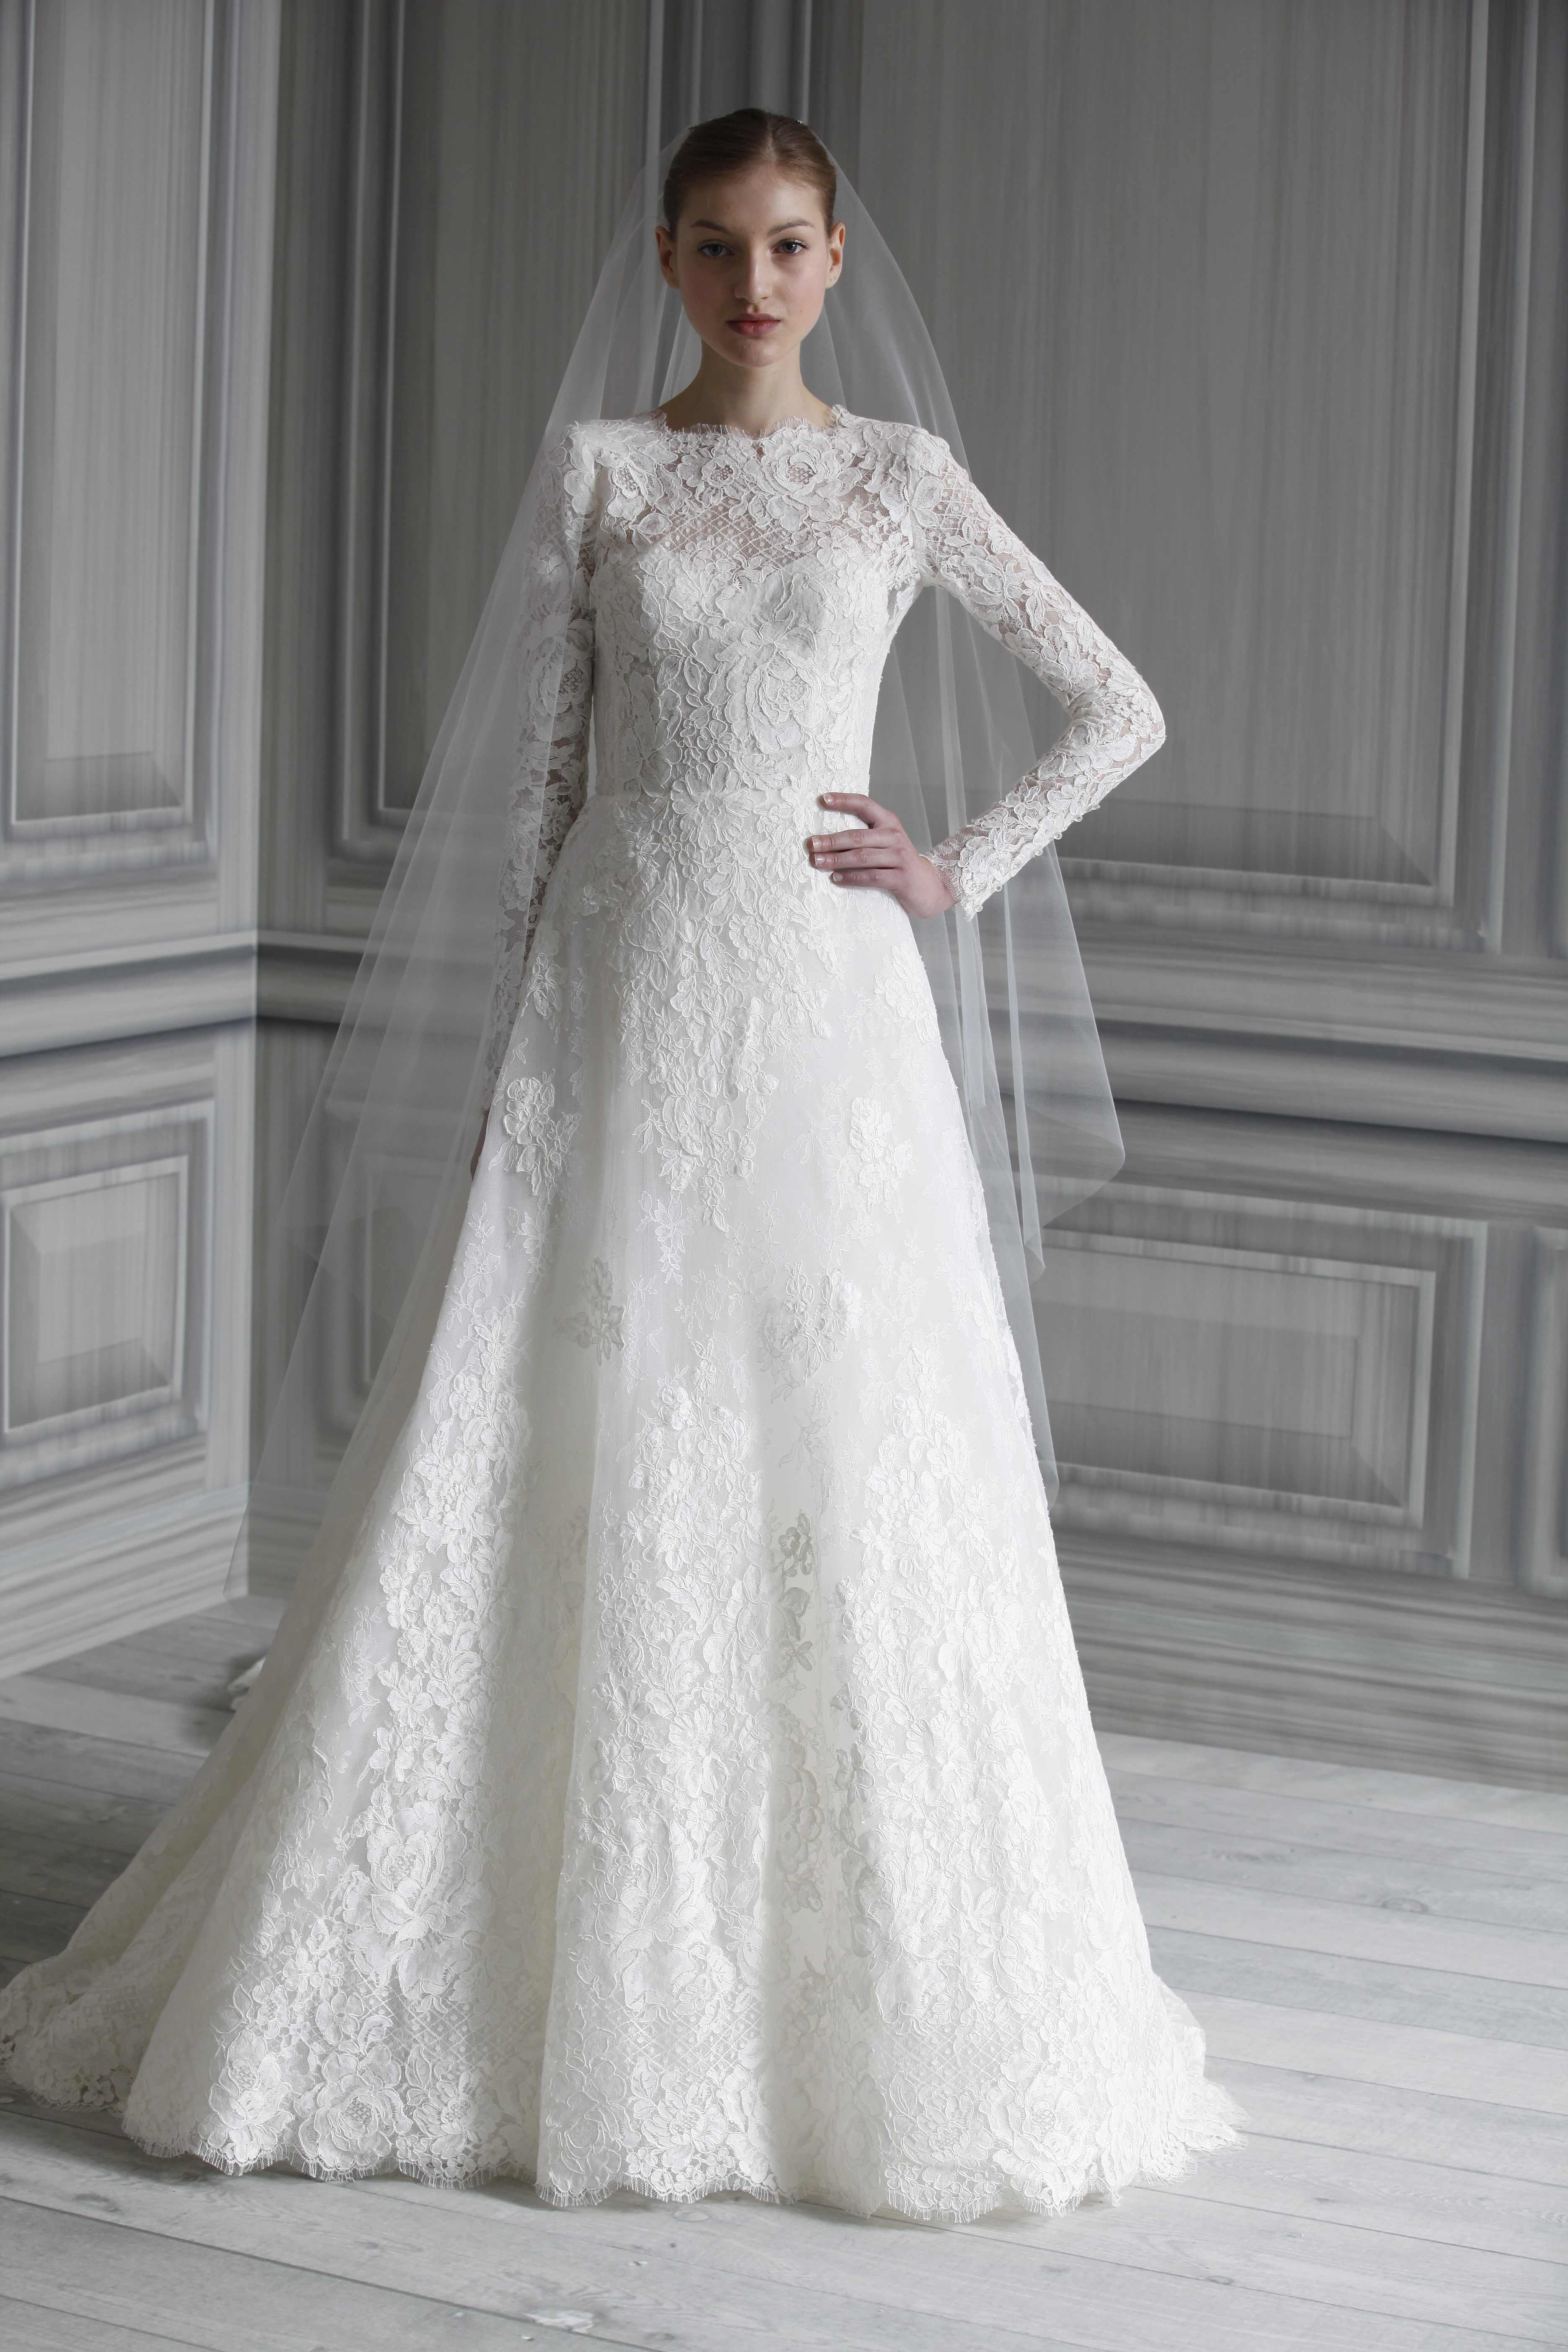 of the most stunning long sleeve wedding dresses long sleeved